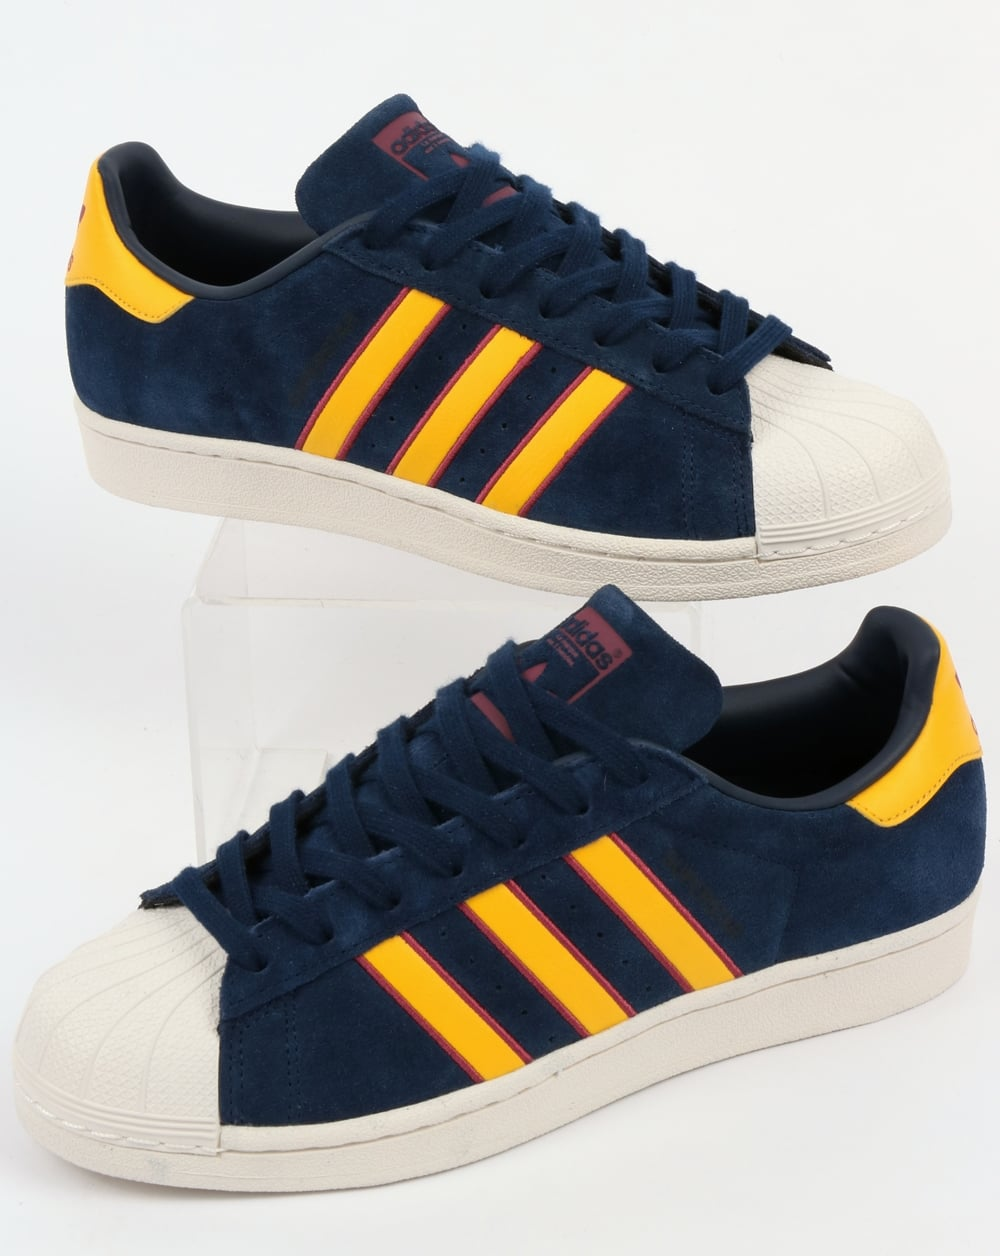 adidas superstar navy blue suede